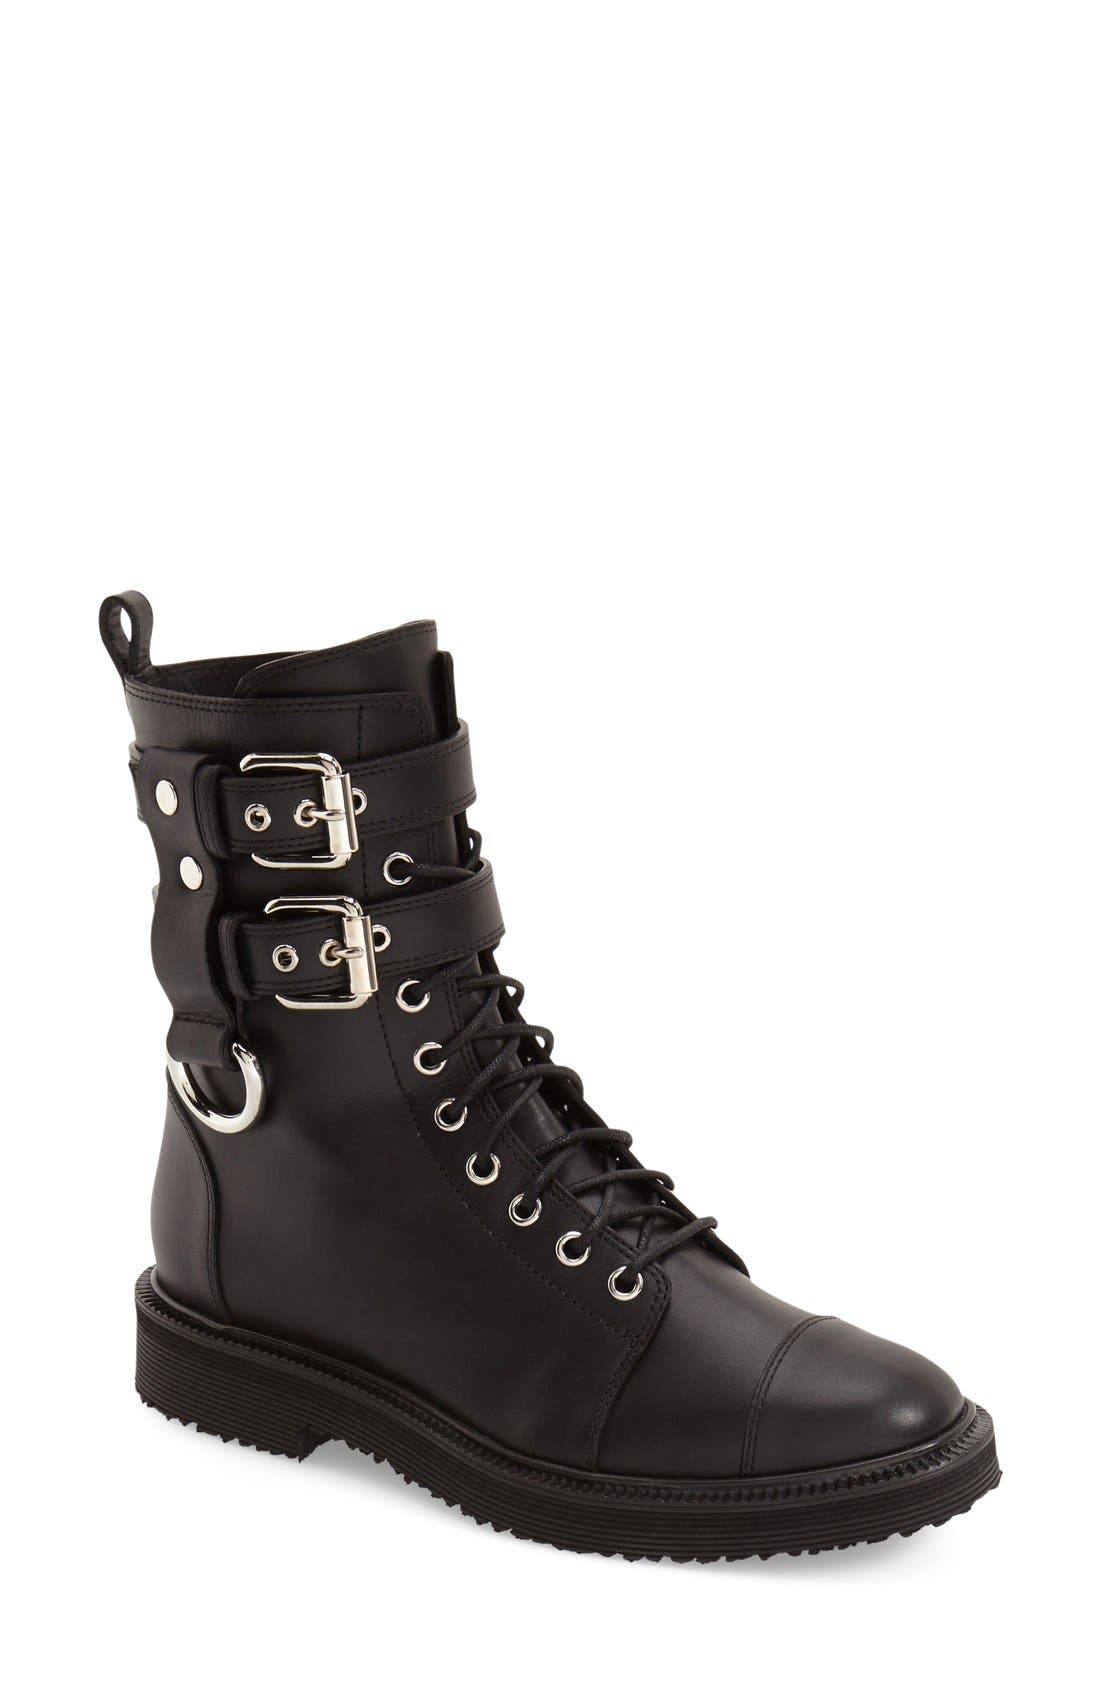 Alternate Image 1 Selected - Giuseppe Zanotti 'Hilary' Military Boot (Women)